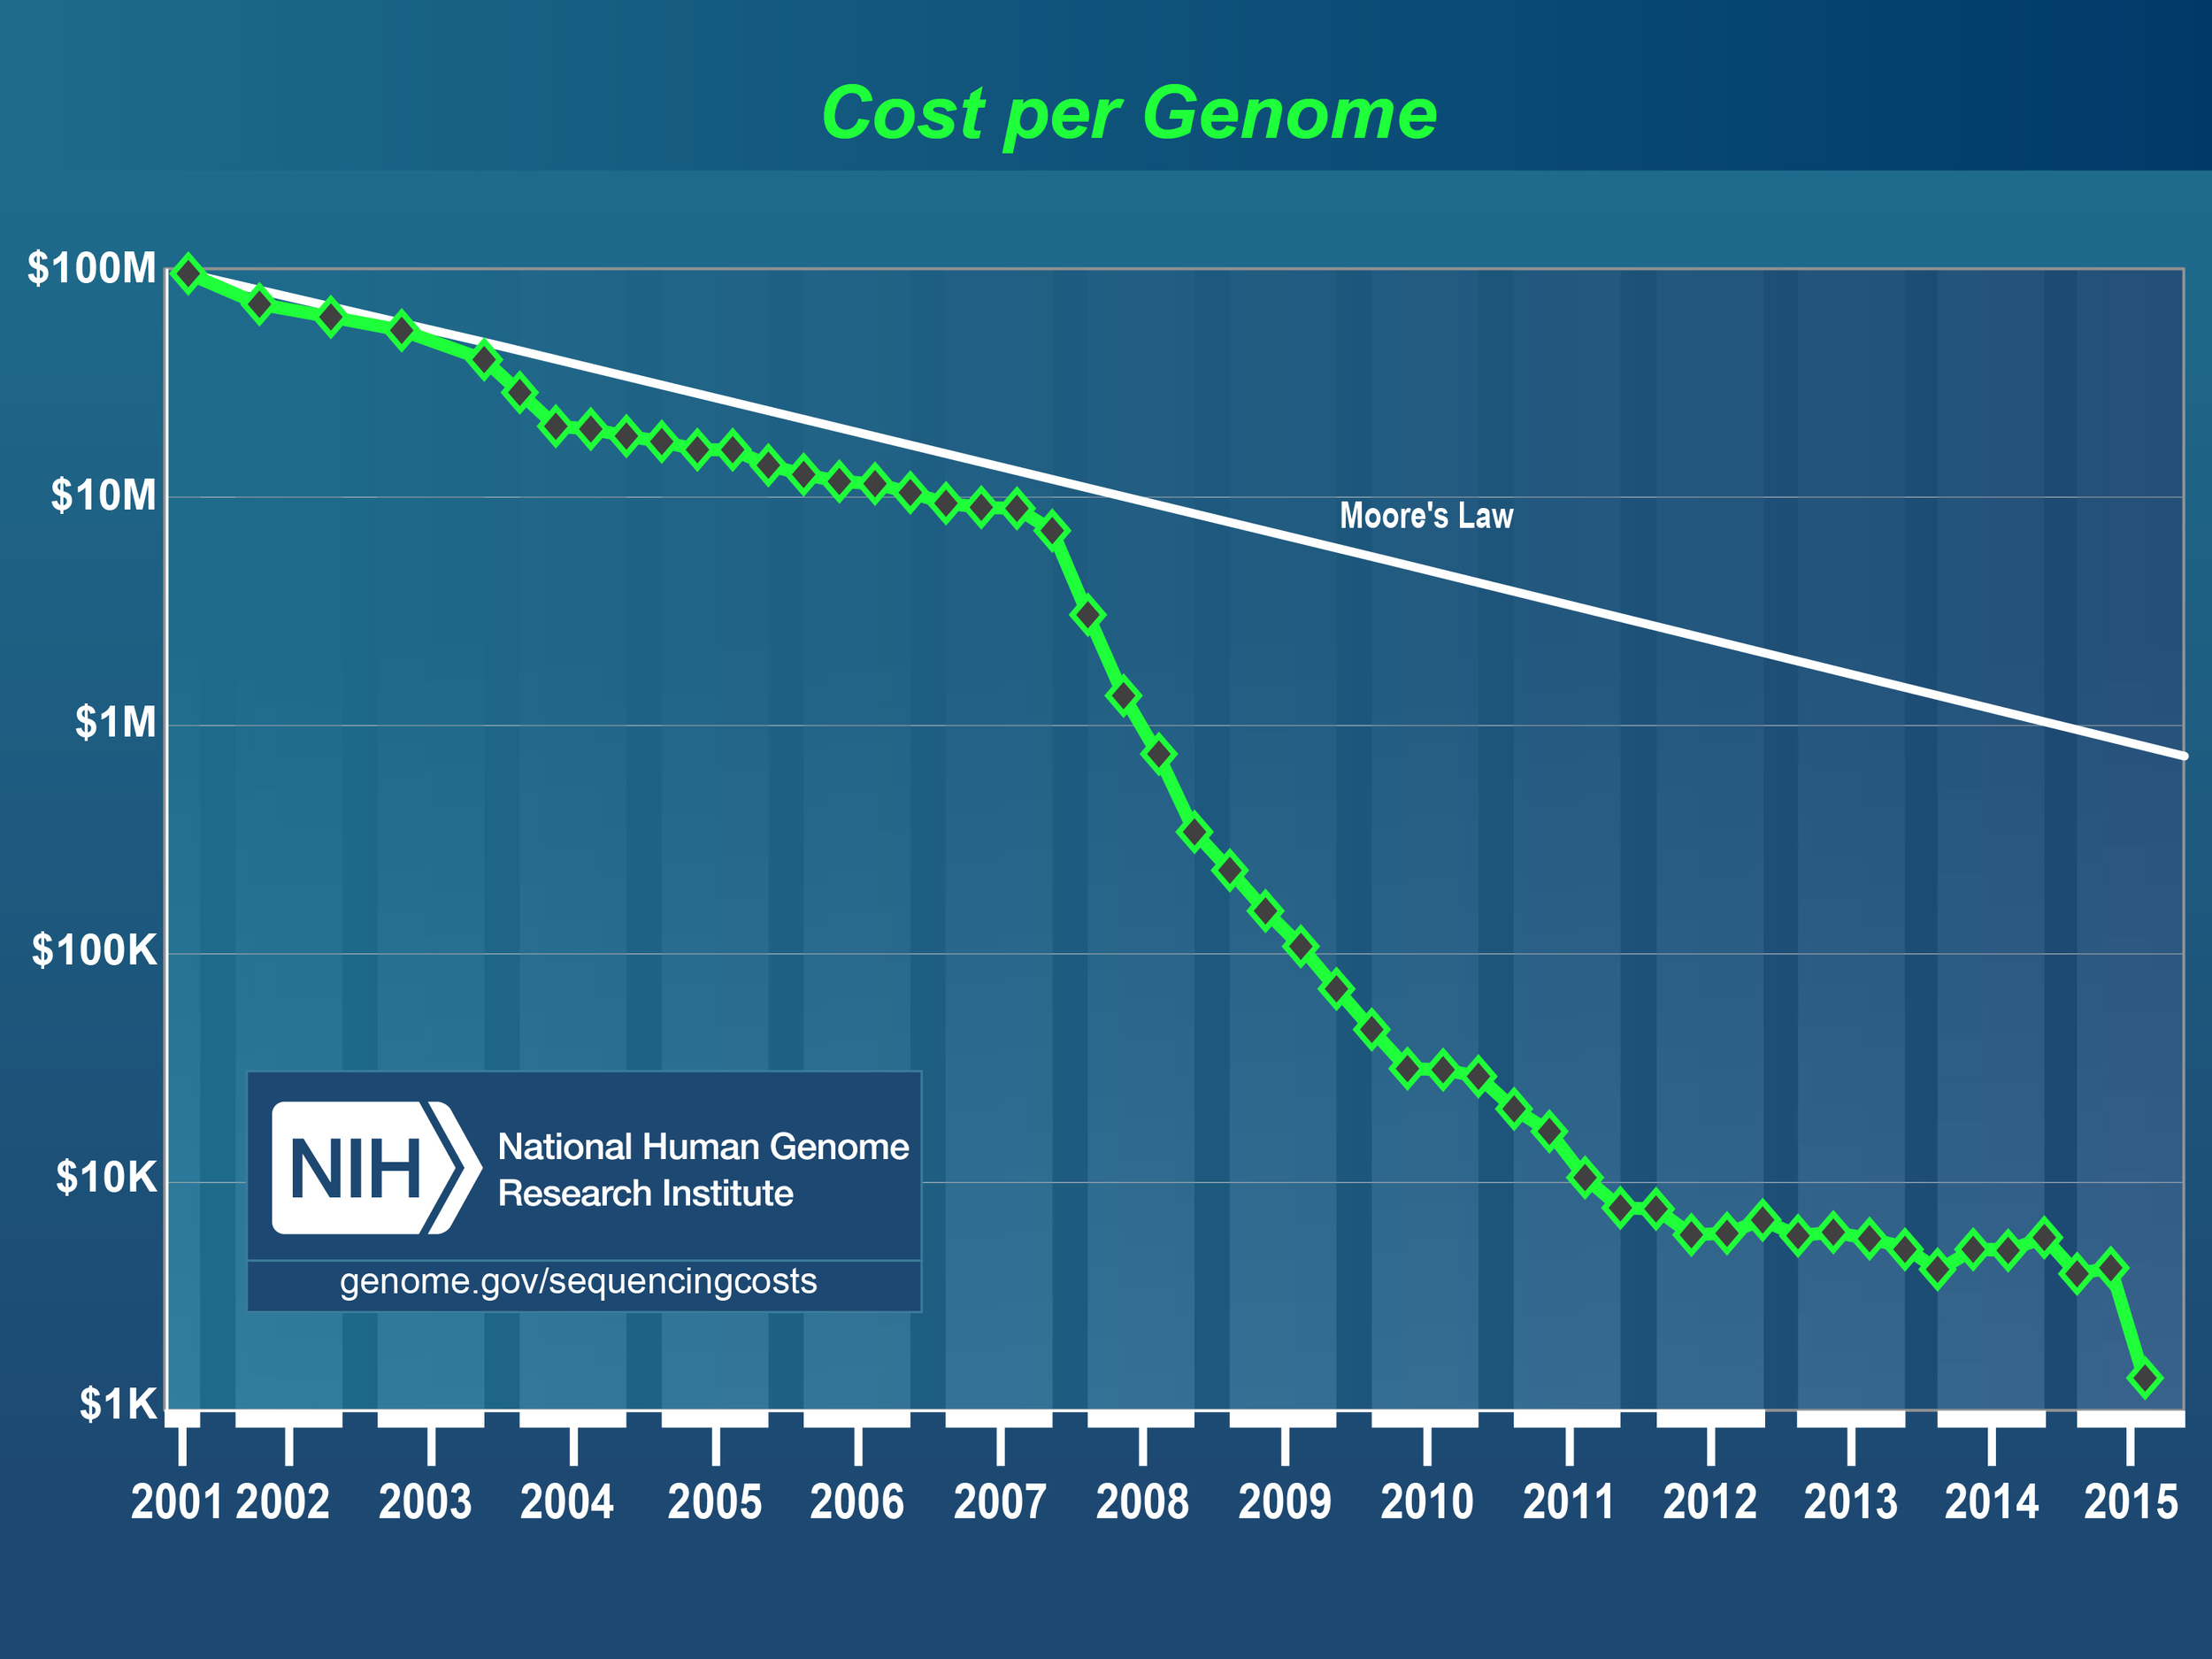 http://www.genome.gov/sequencingcosts/